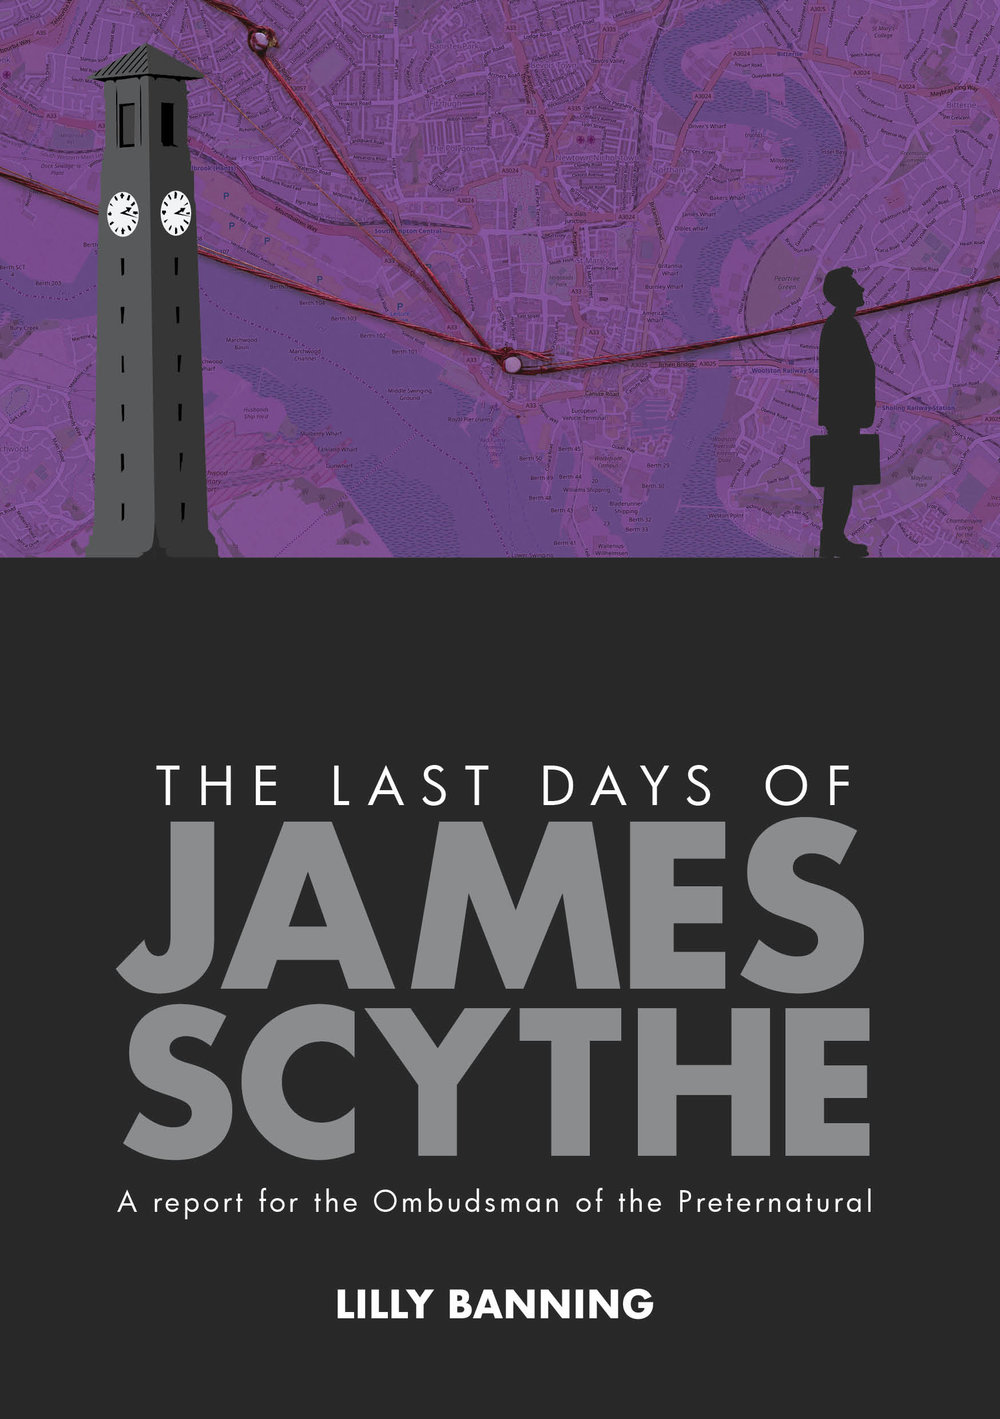 The Last Days of James Scythe